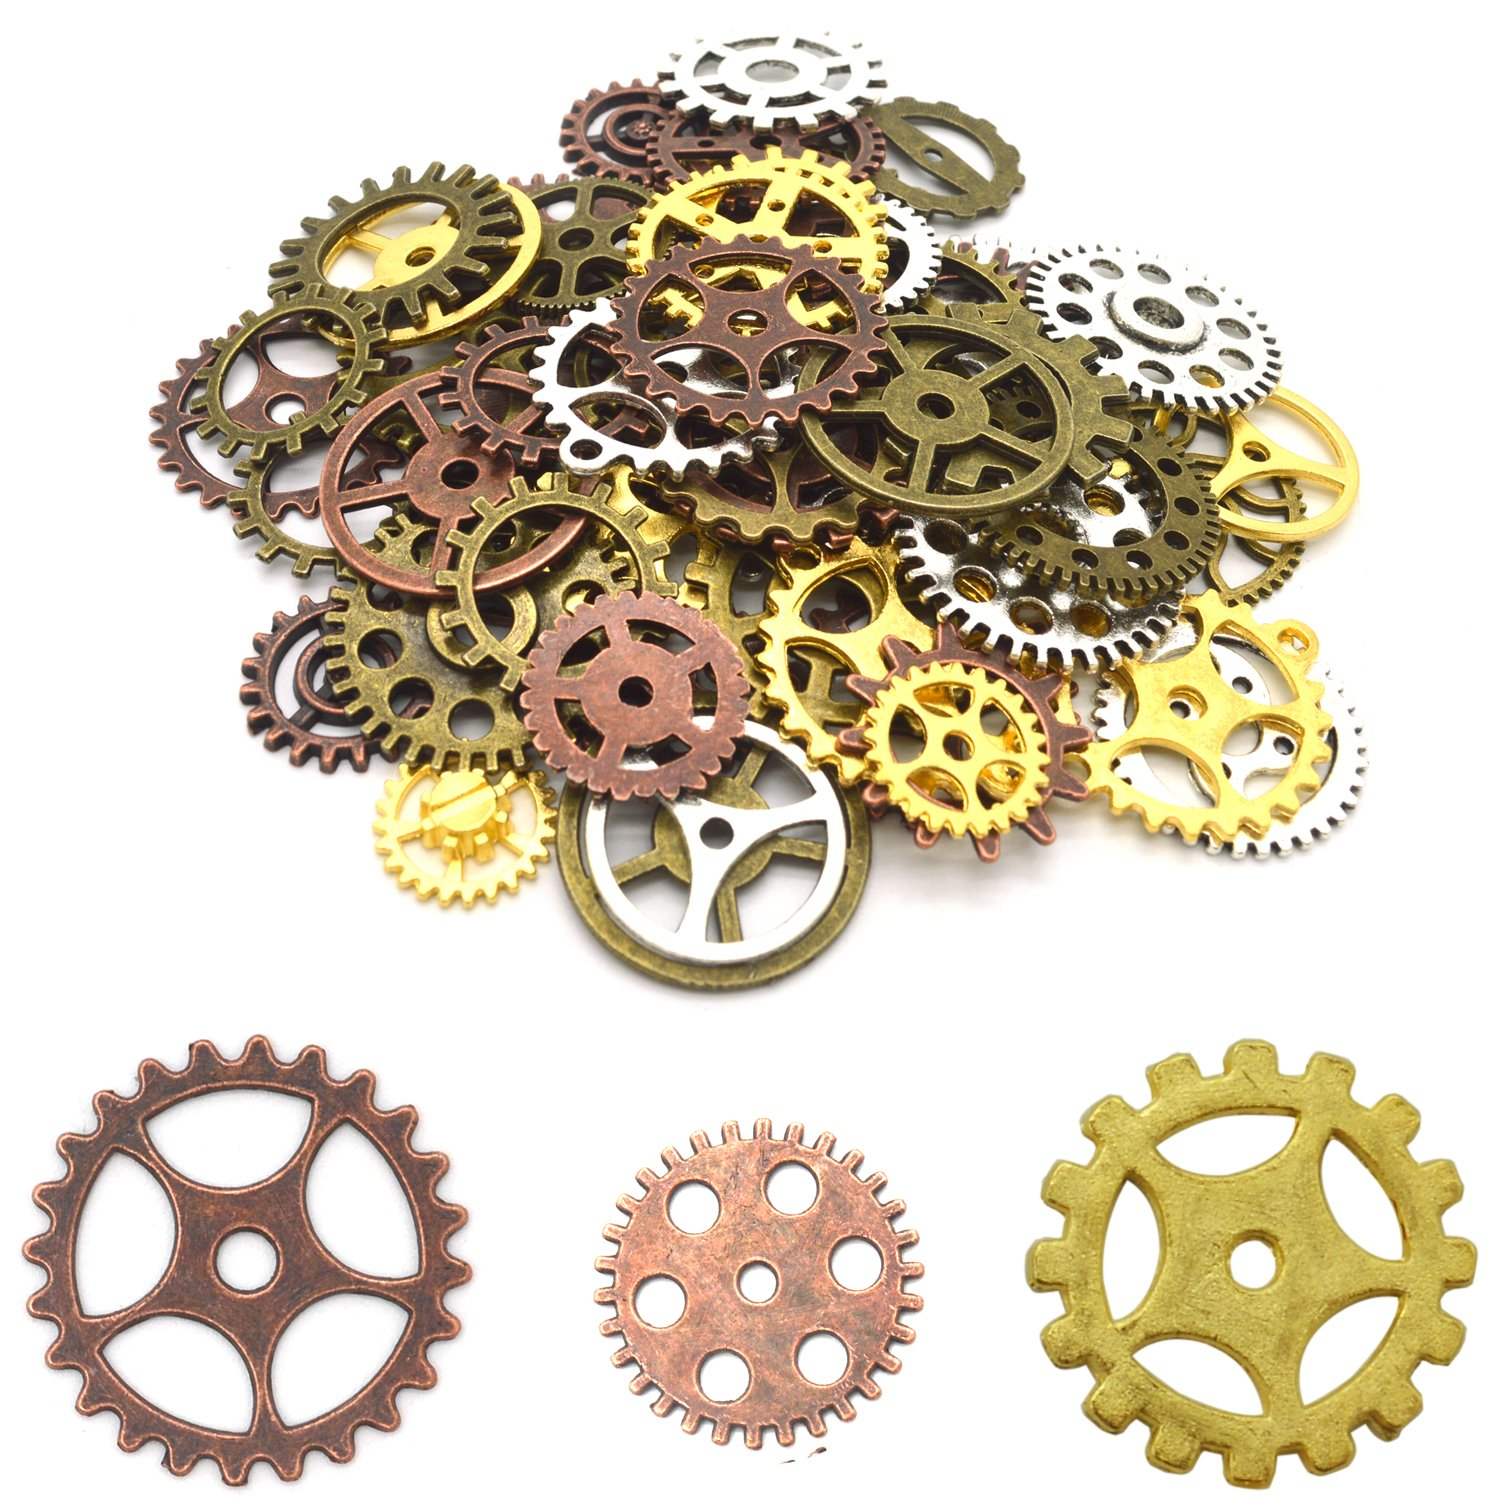 galleon 150 gram steampunk gears and cogs doubletwo silver bronze